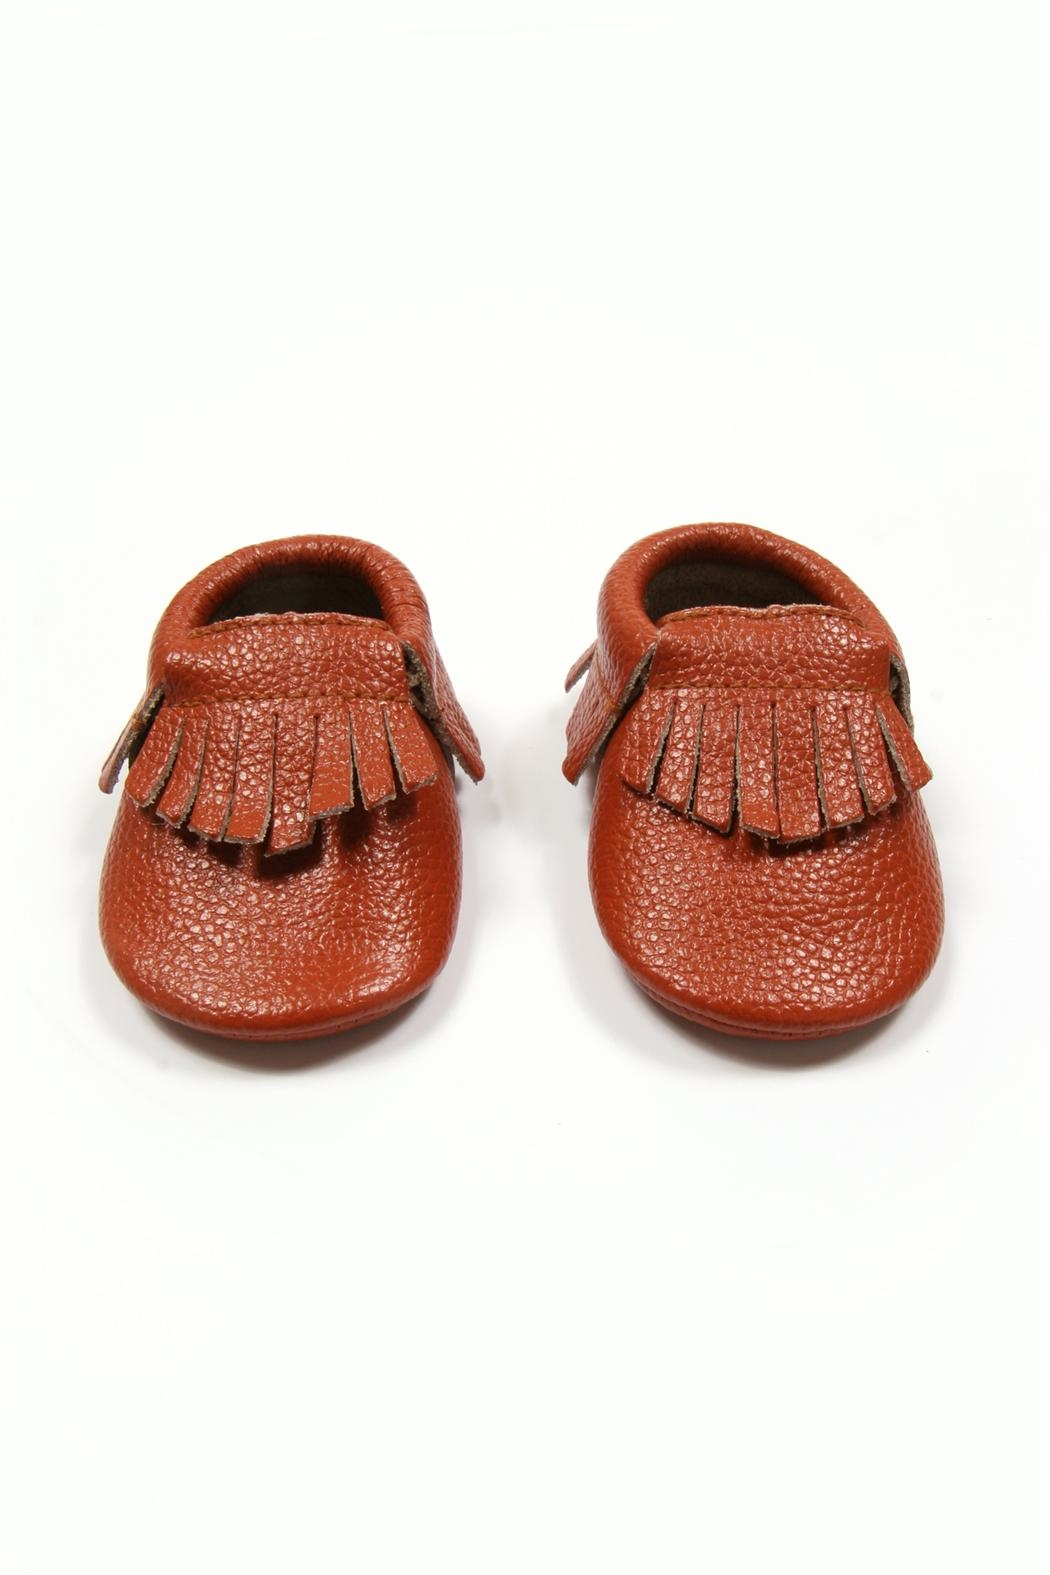 Mac & Lou Leather Fringe Moccasins - Front Full Image